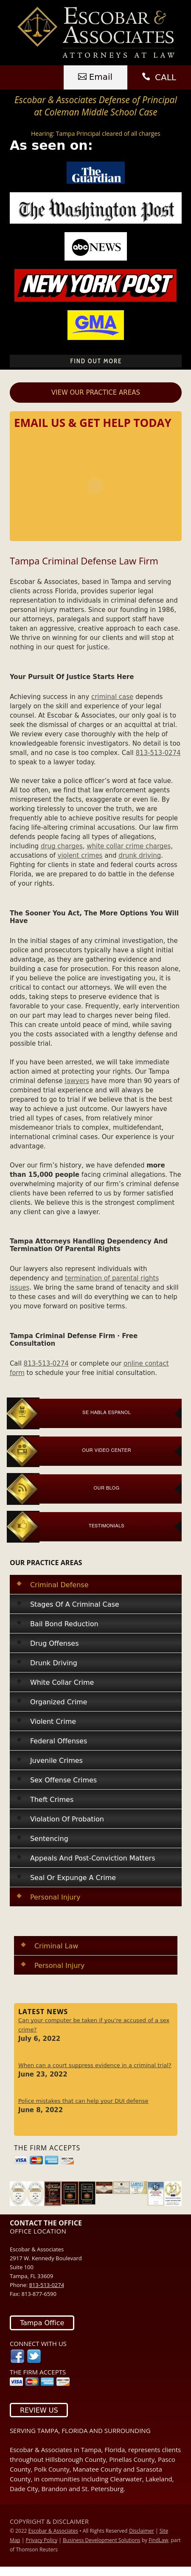 Escobar & Associates - Tampa FL Lawyers